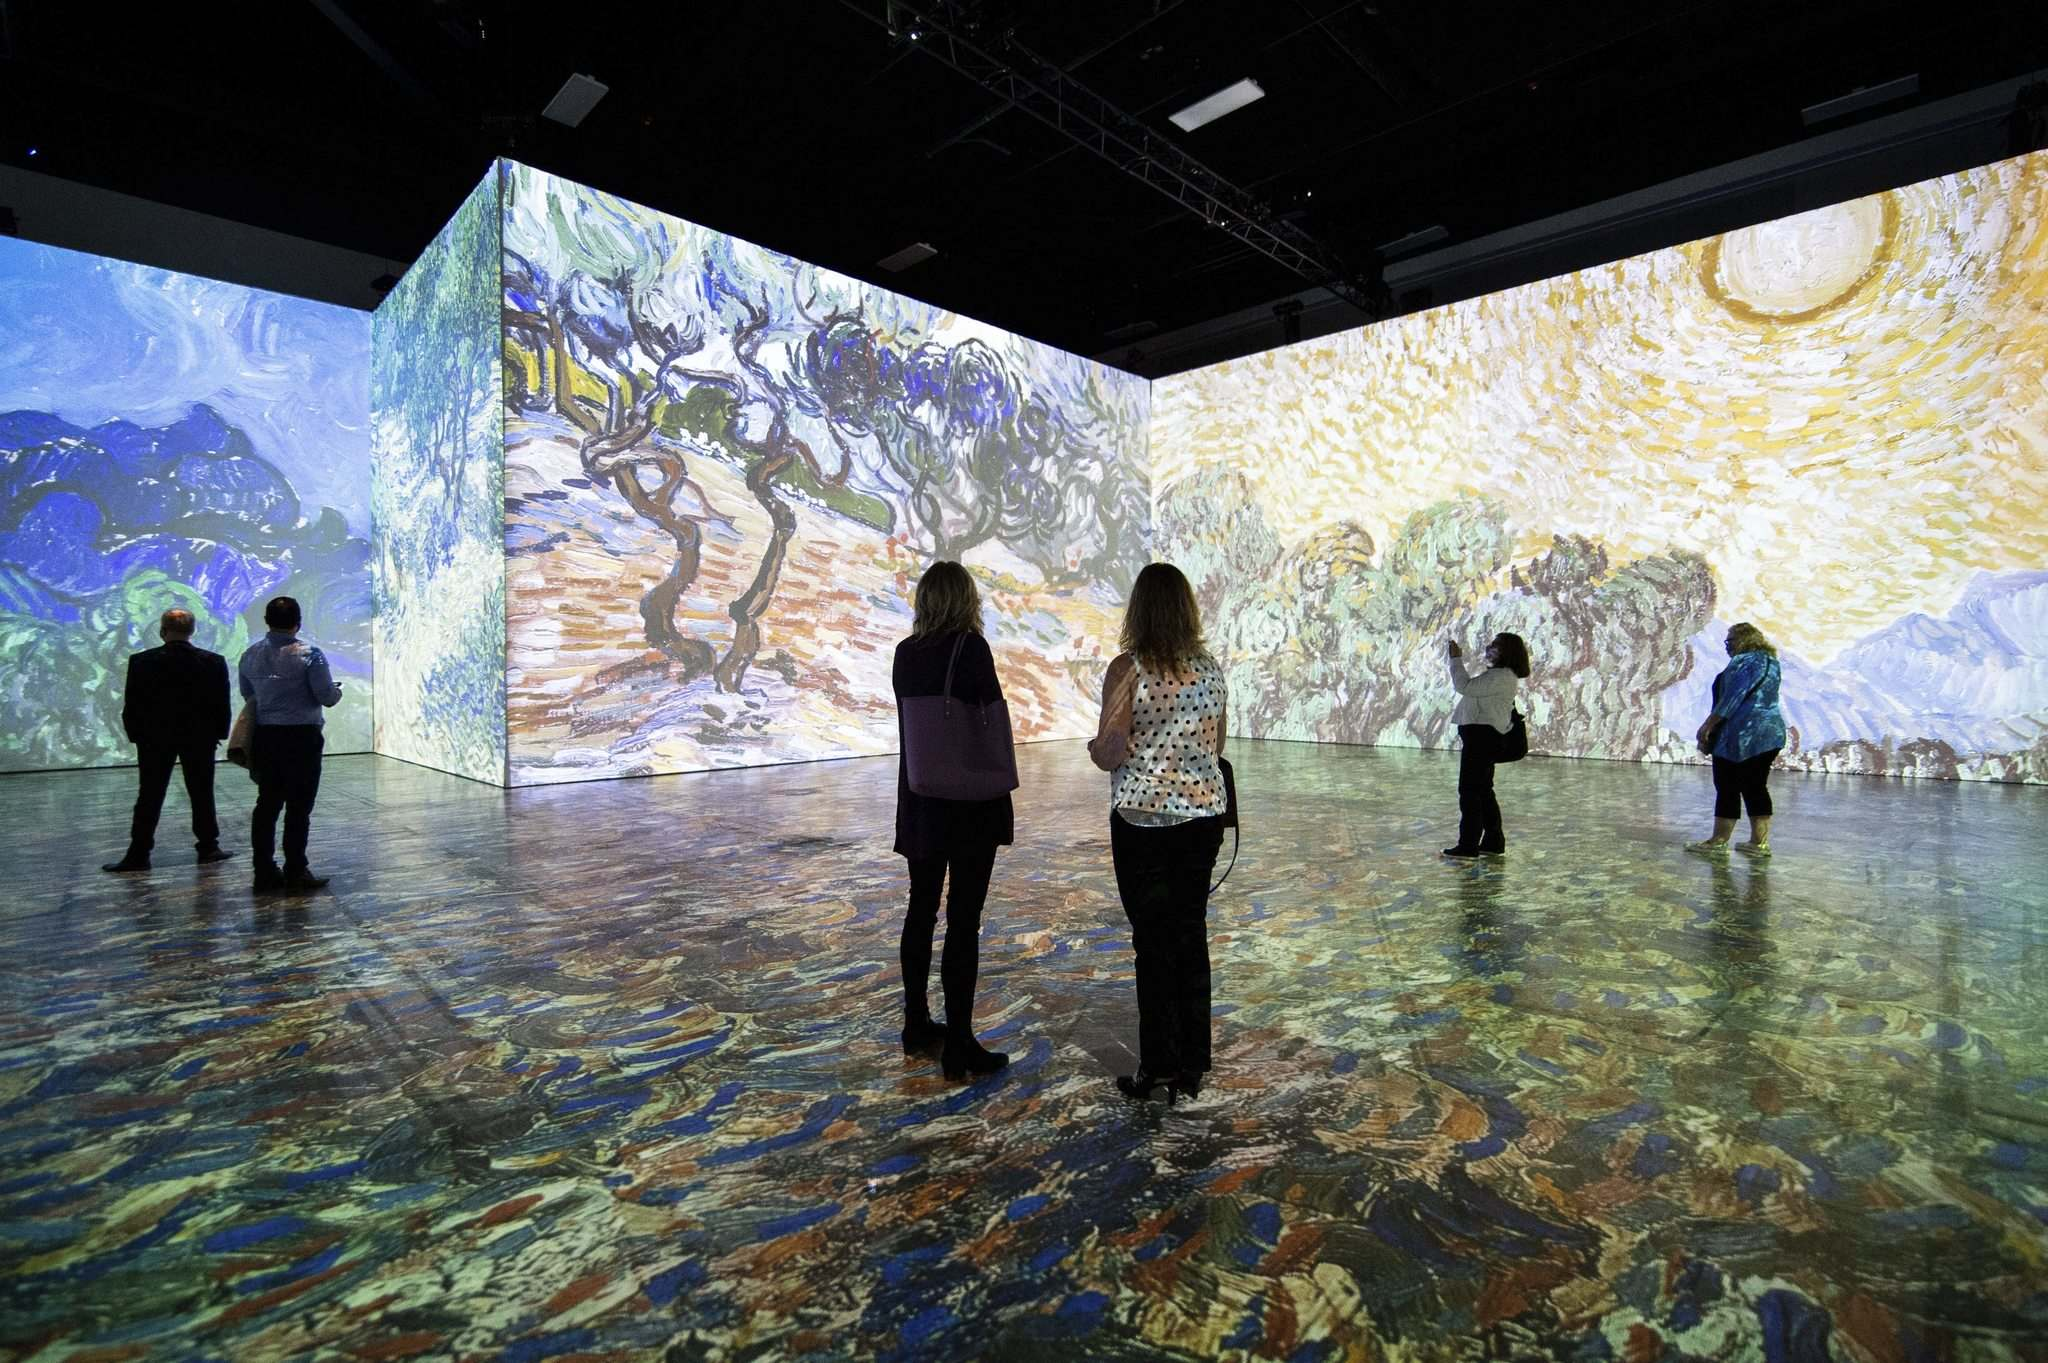 The exhibit requires you reserve the hour you will attend, which controls the number of attendees at any given time. That means it is easy to physically distance from your fellow art lovers